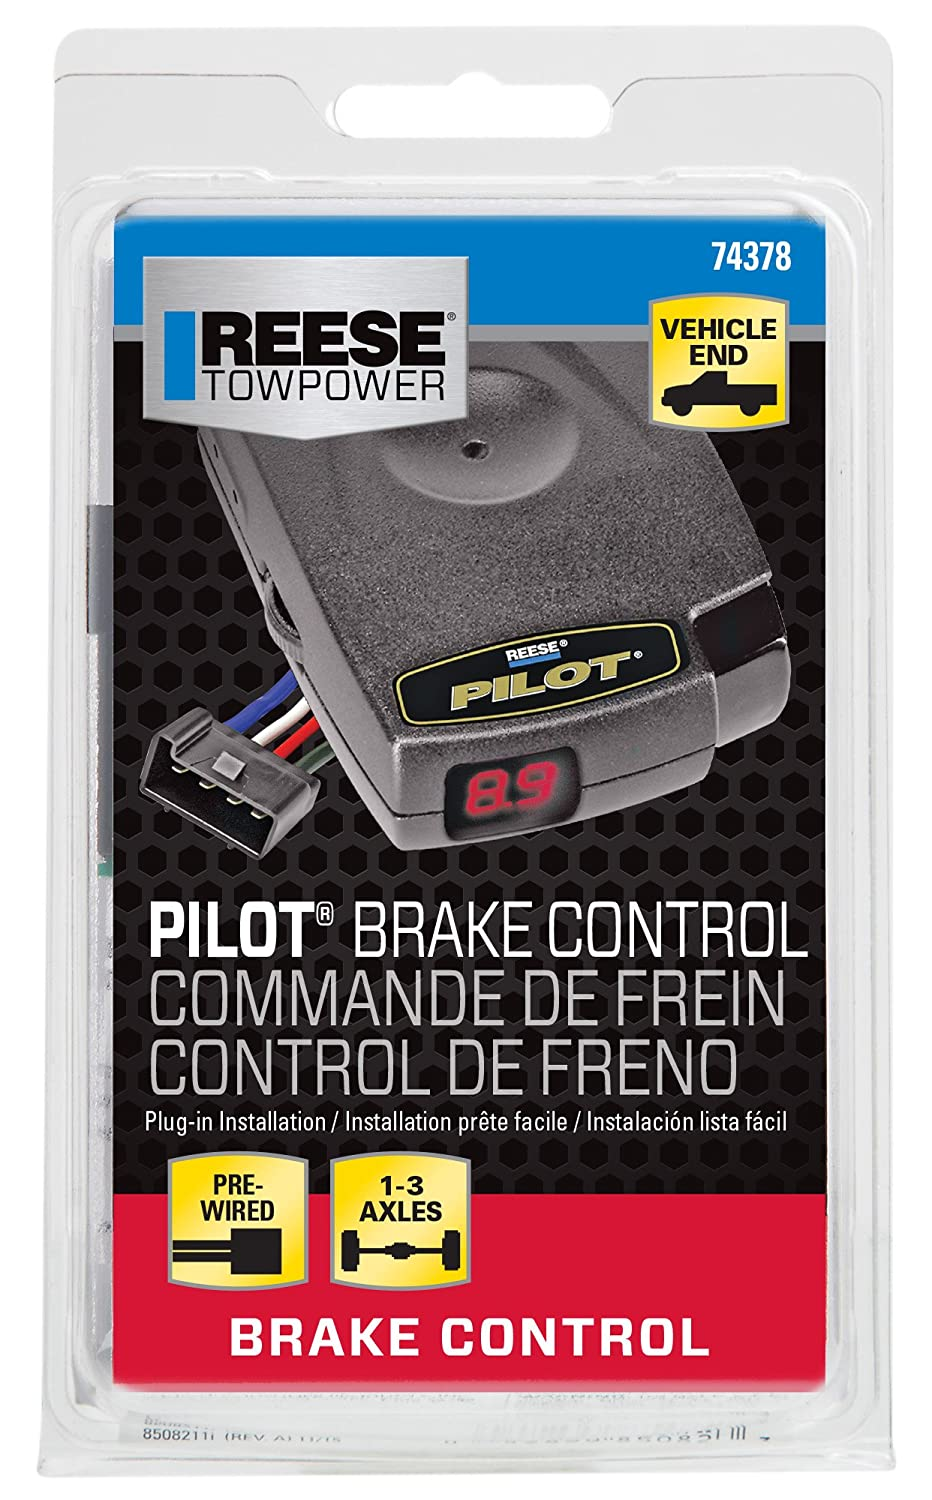 81XG5K1dnhL._SL1500_ amazon com reese towpower 74378 pilot brake controller automotive  at suagrazia.org